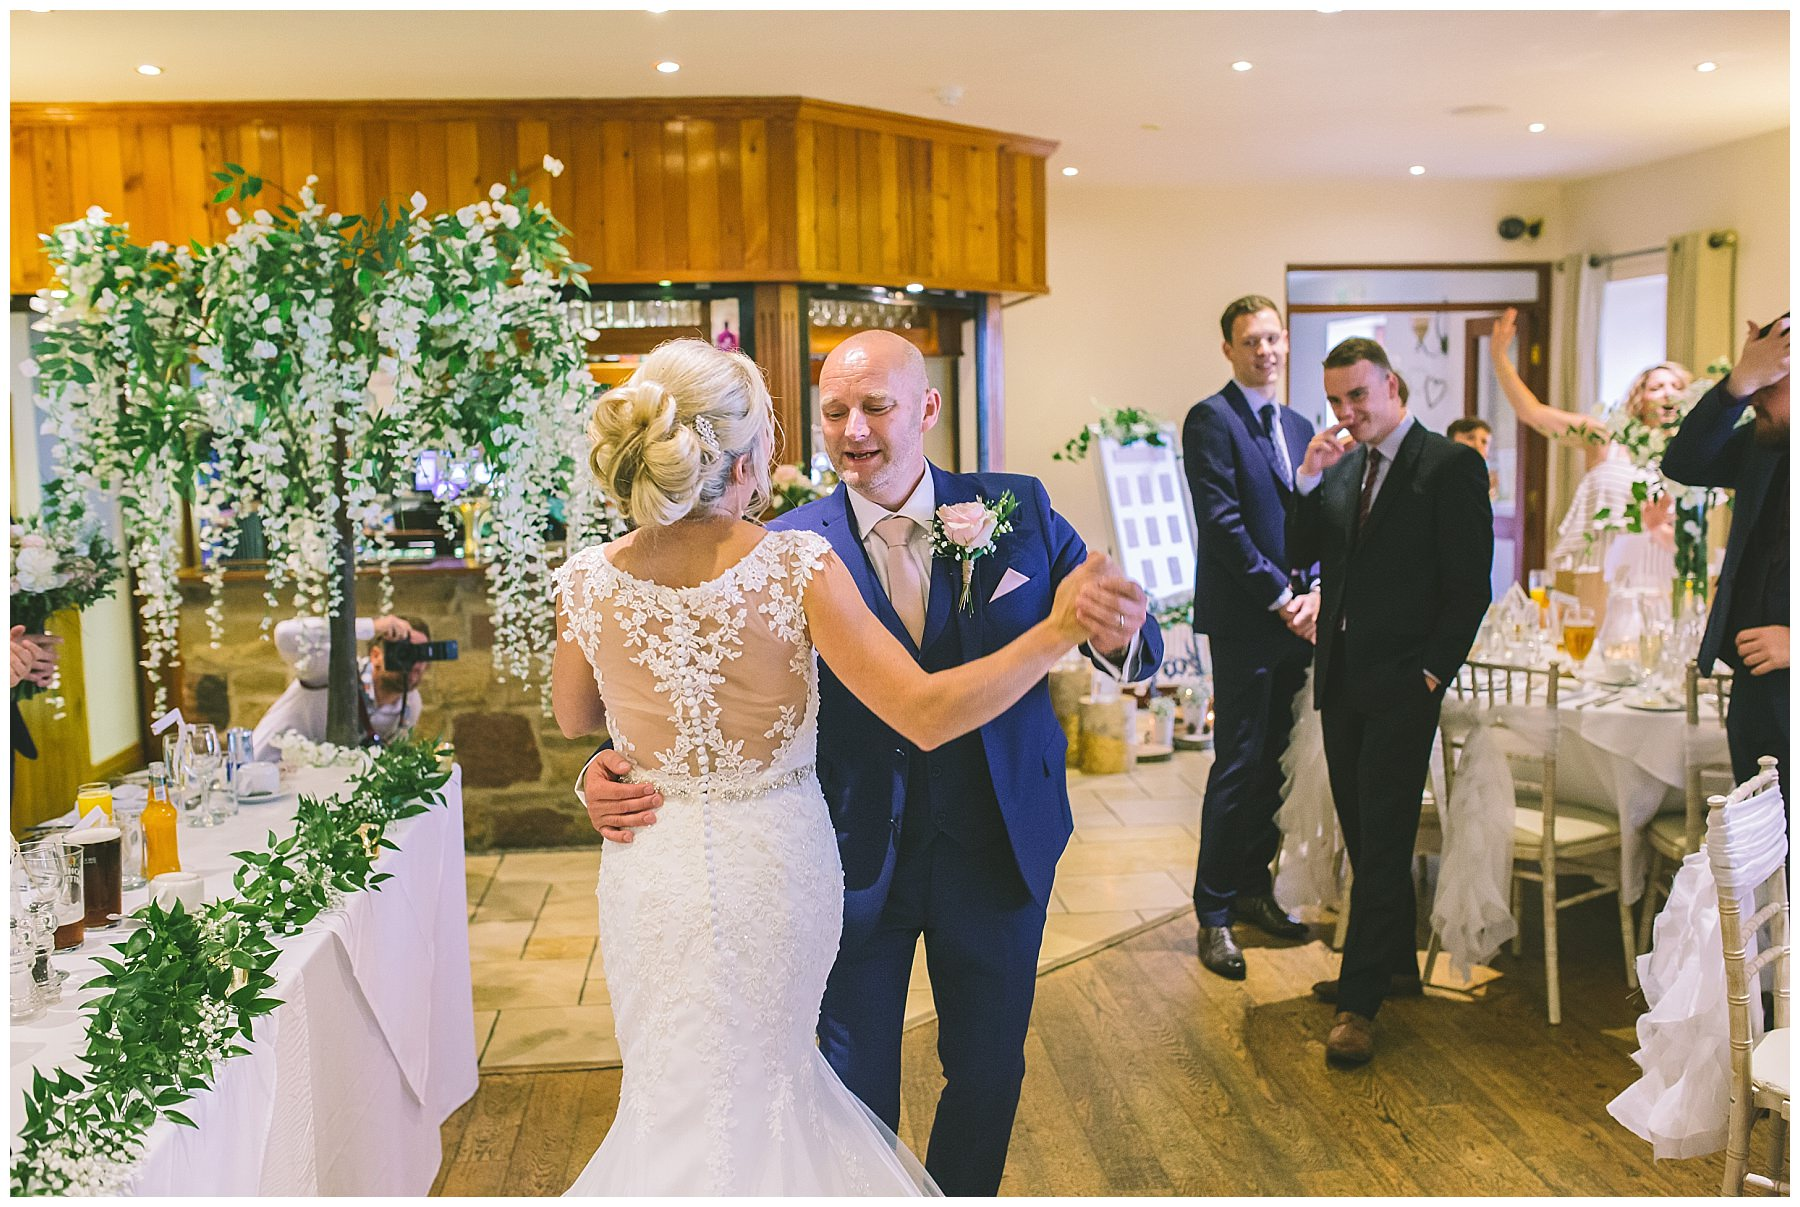 bride and groom do impromptu first dance during wedding breakfast entrance